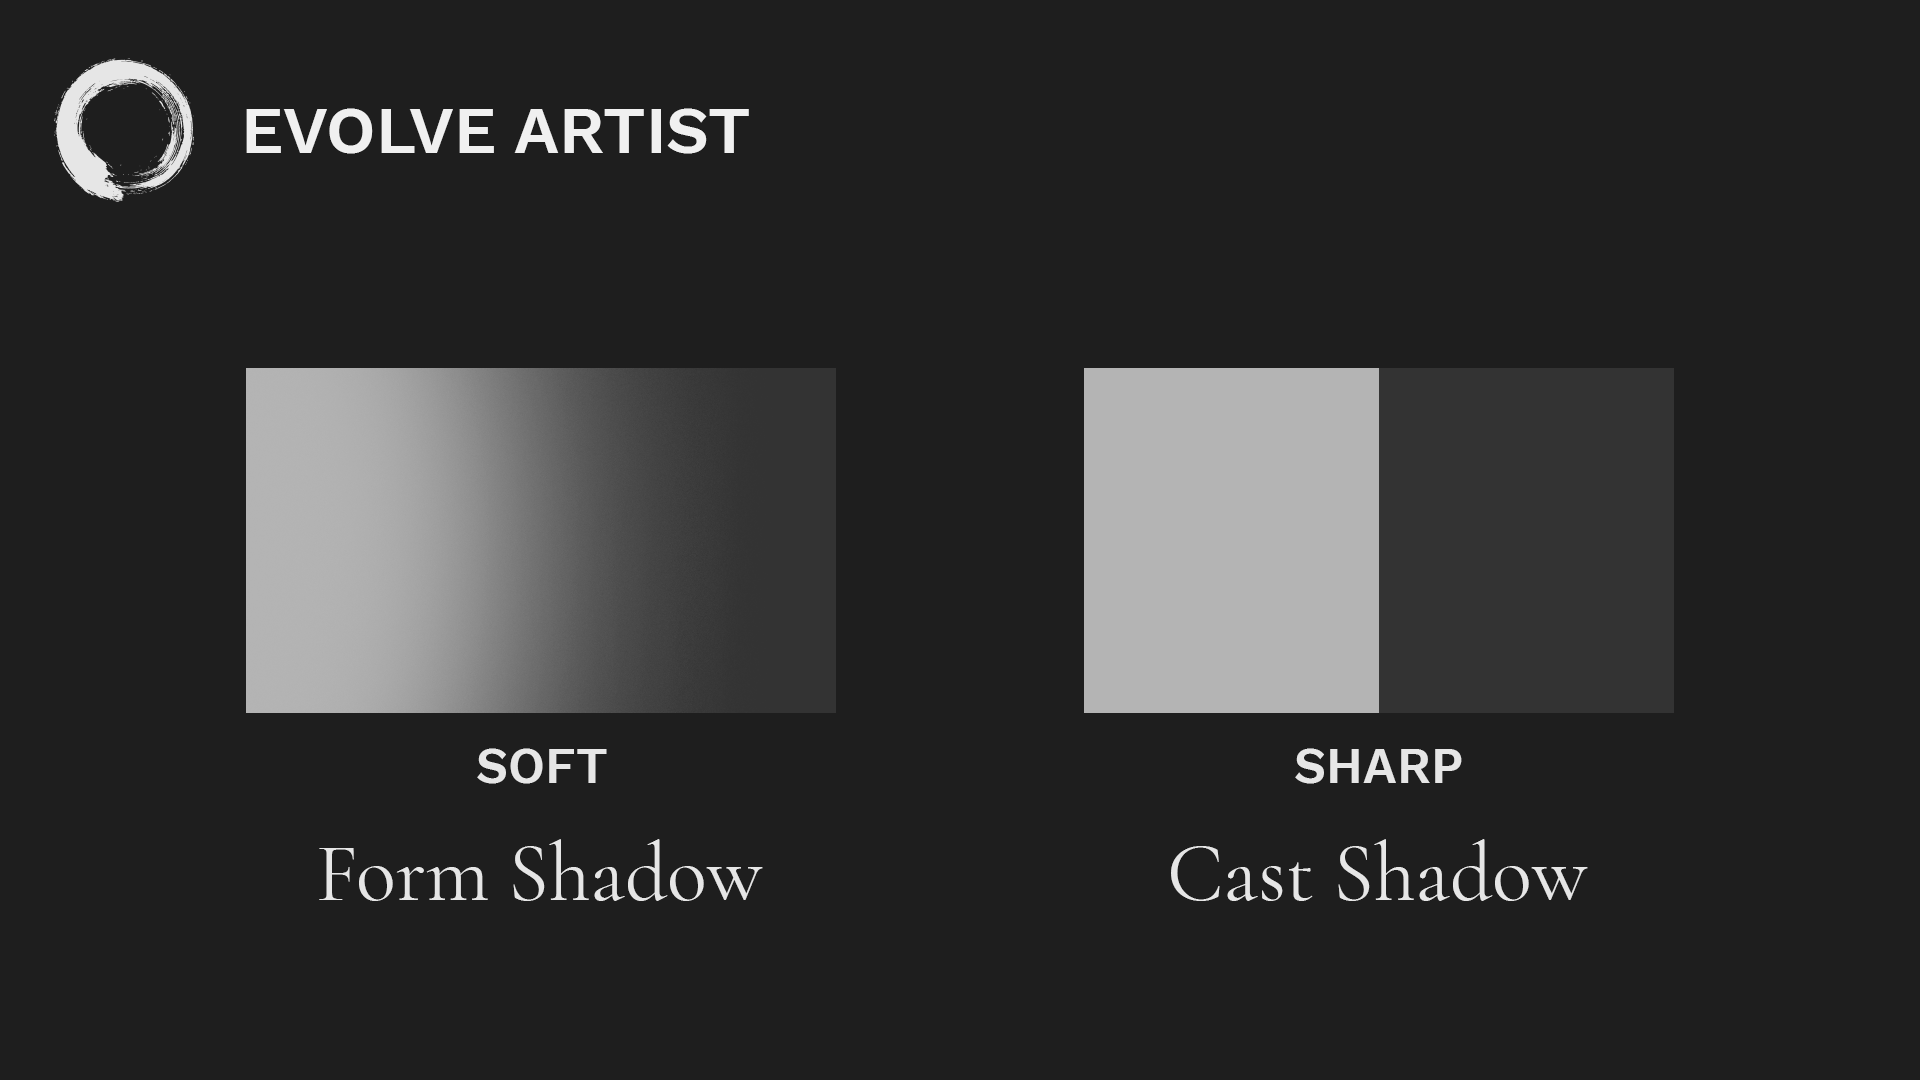 Form shadows are soft and cast shadows are sharp.